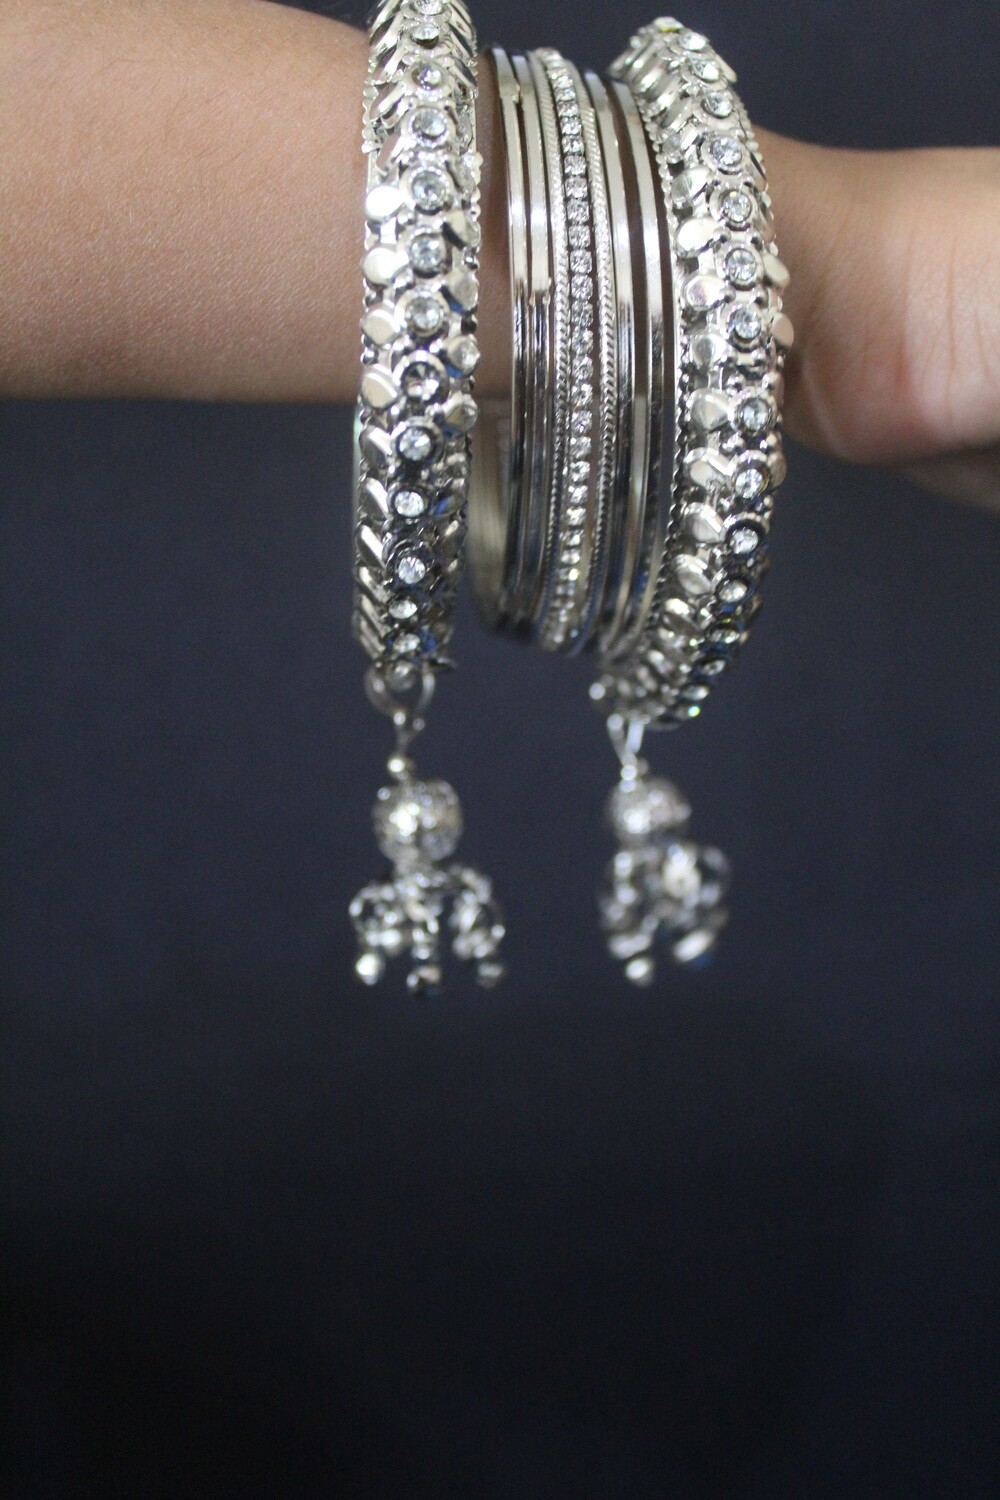 Dangling Charm Studded Bangle Set